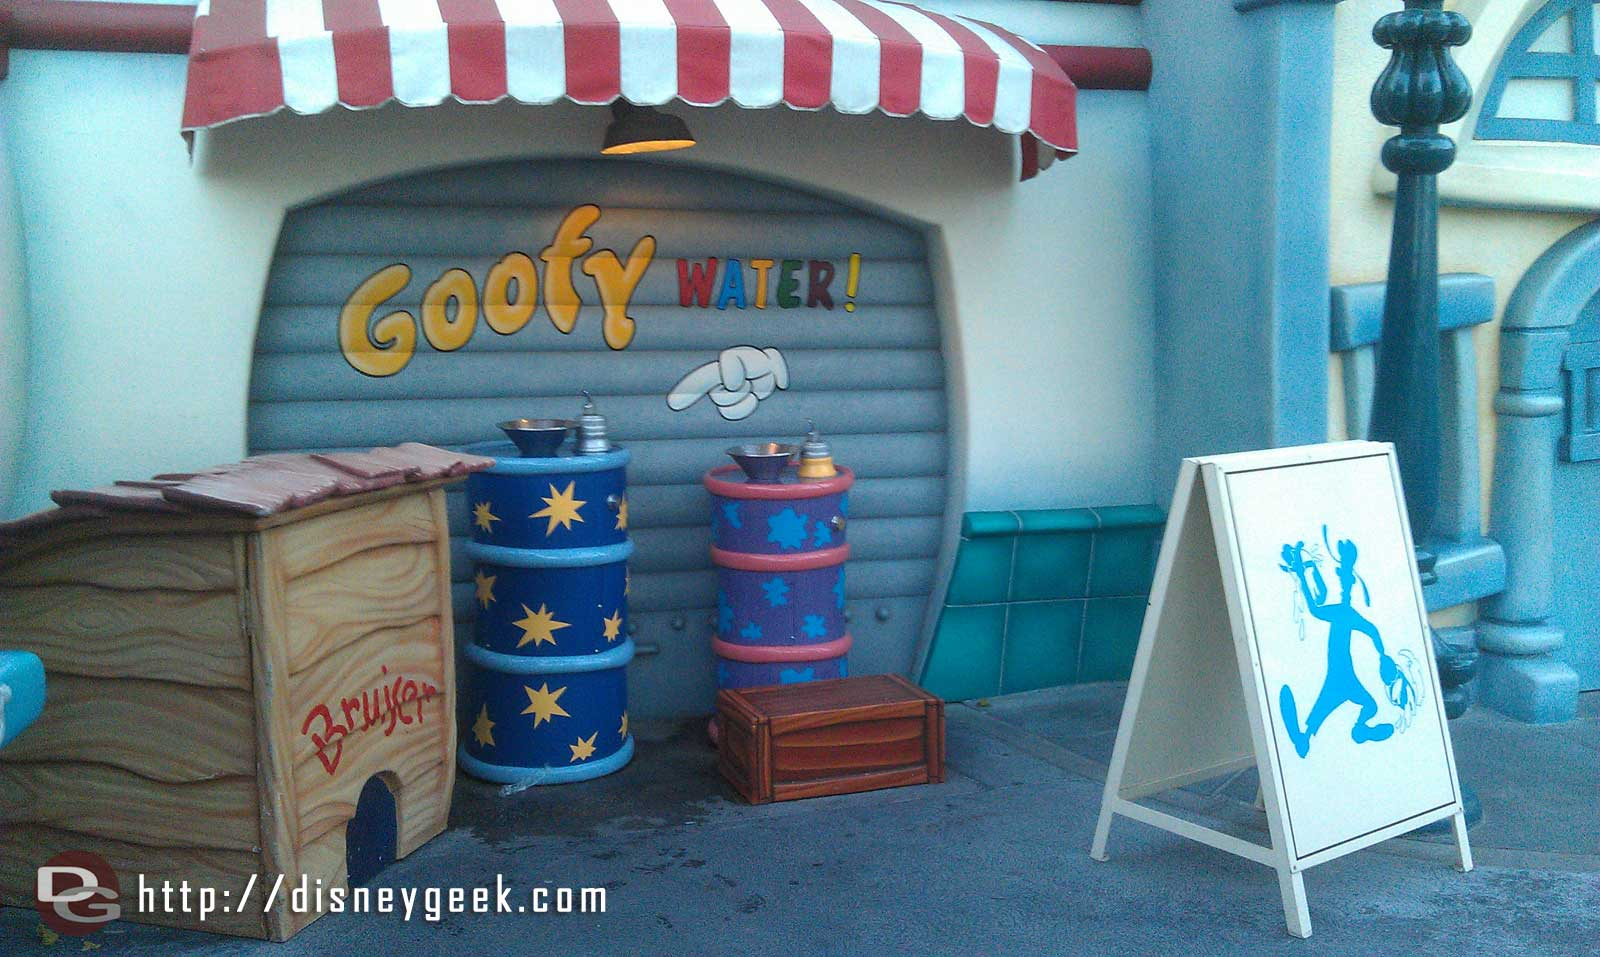 Goofy Water has finally returned to Toontown